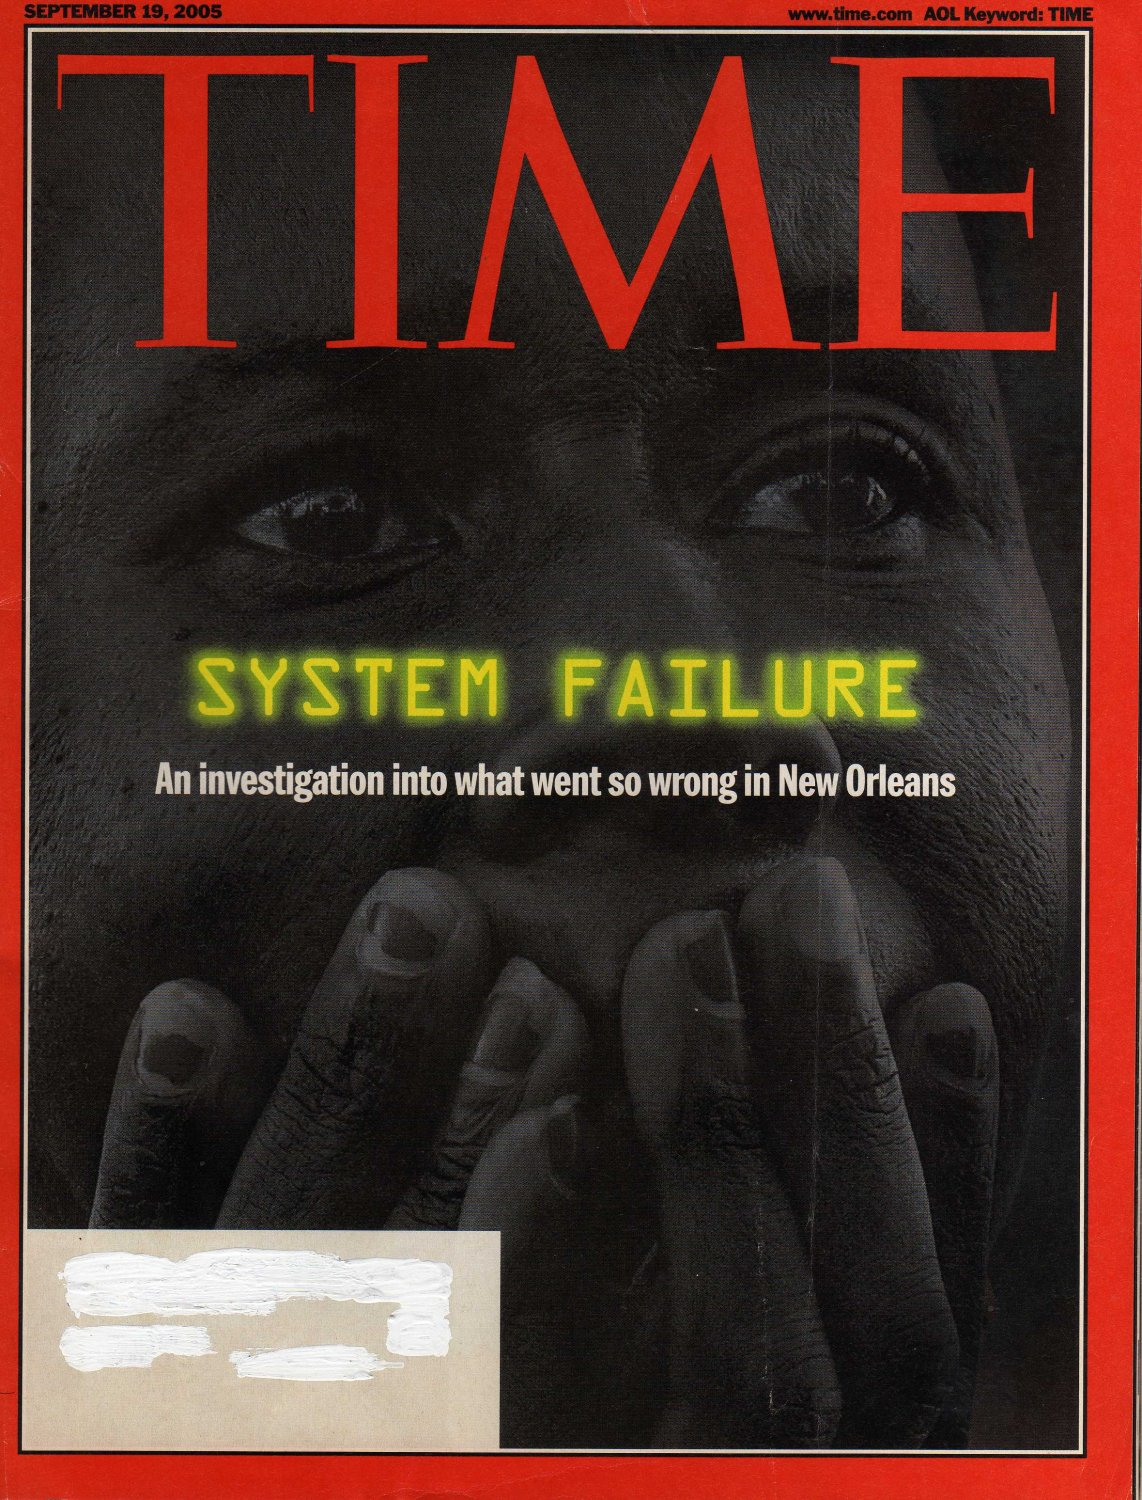 TIME Magazine September 19, 2005 (System Failure)